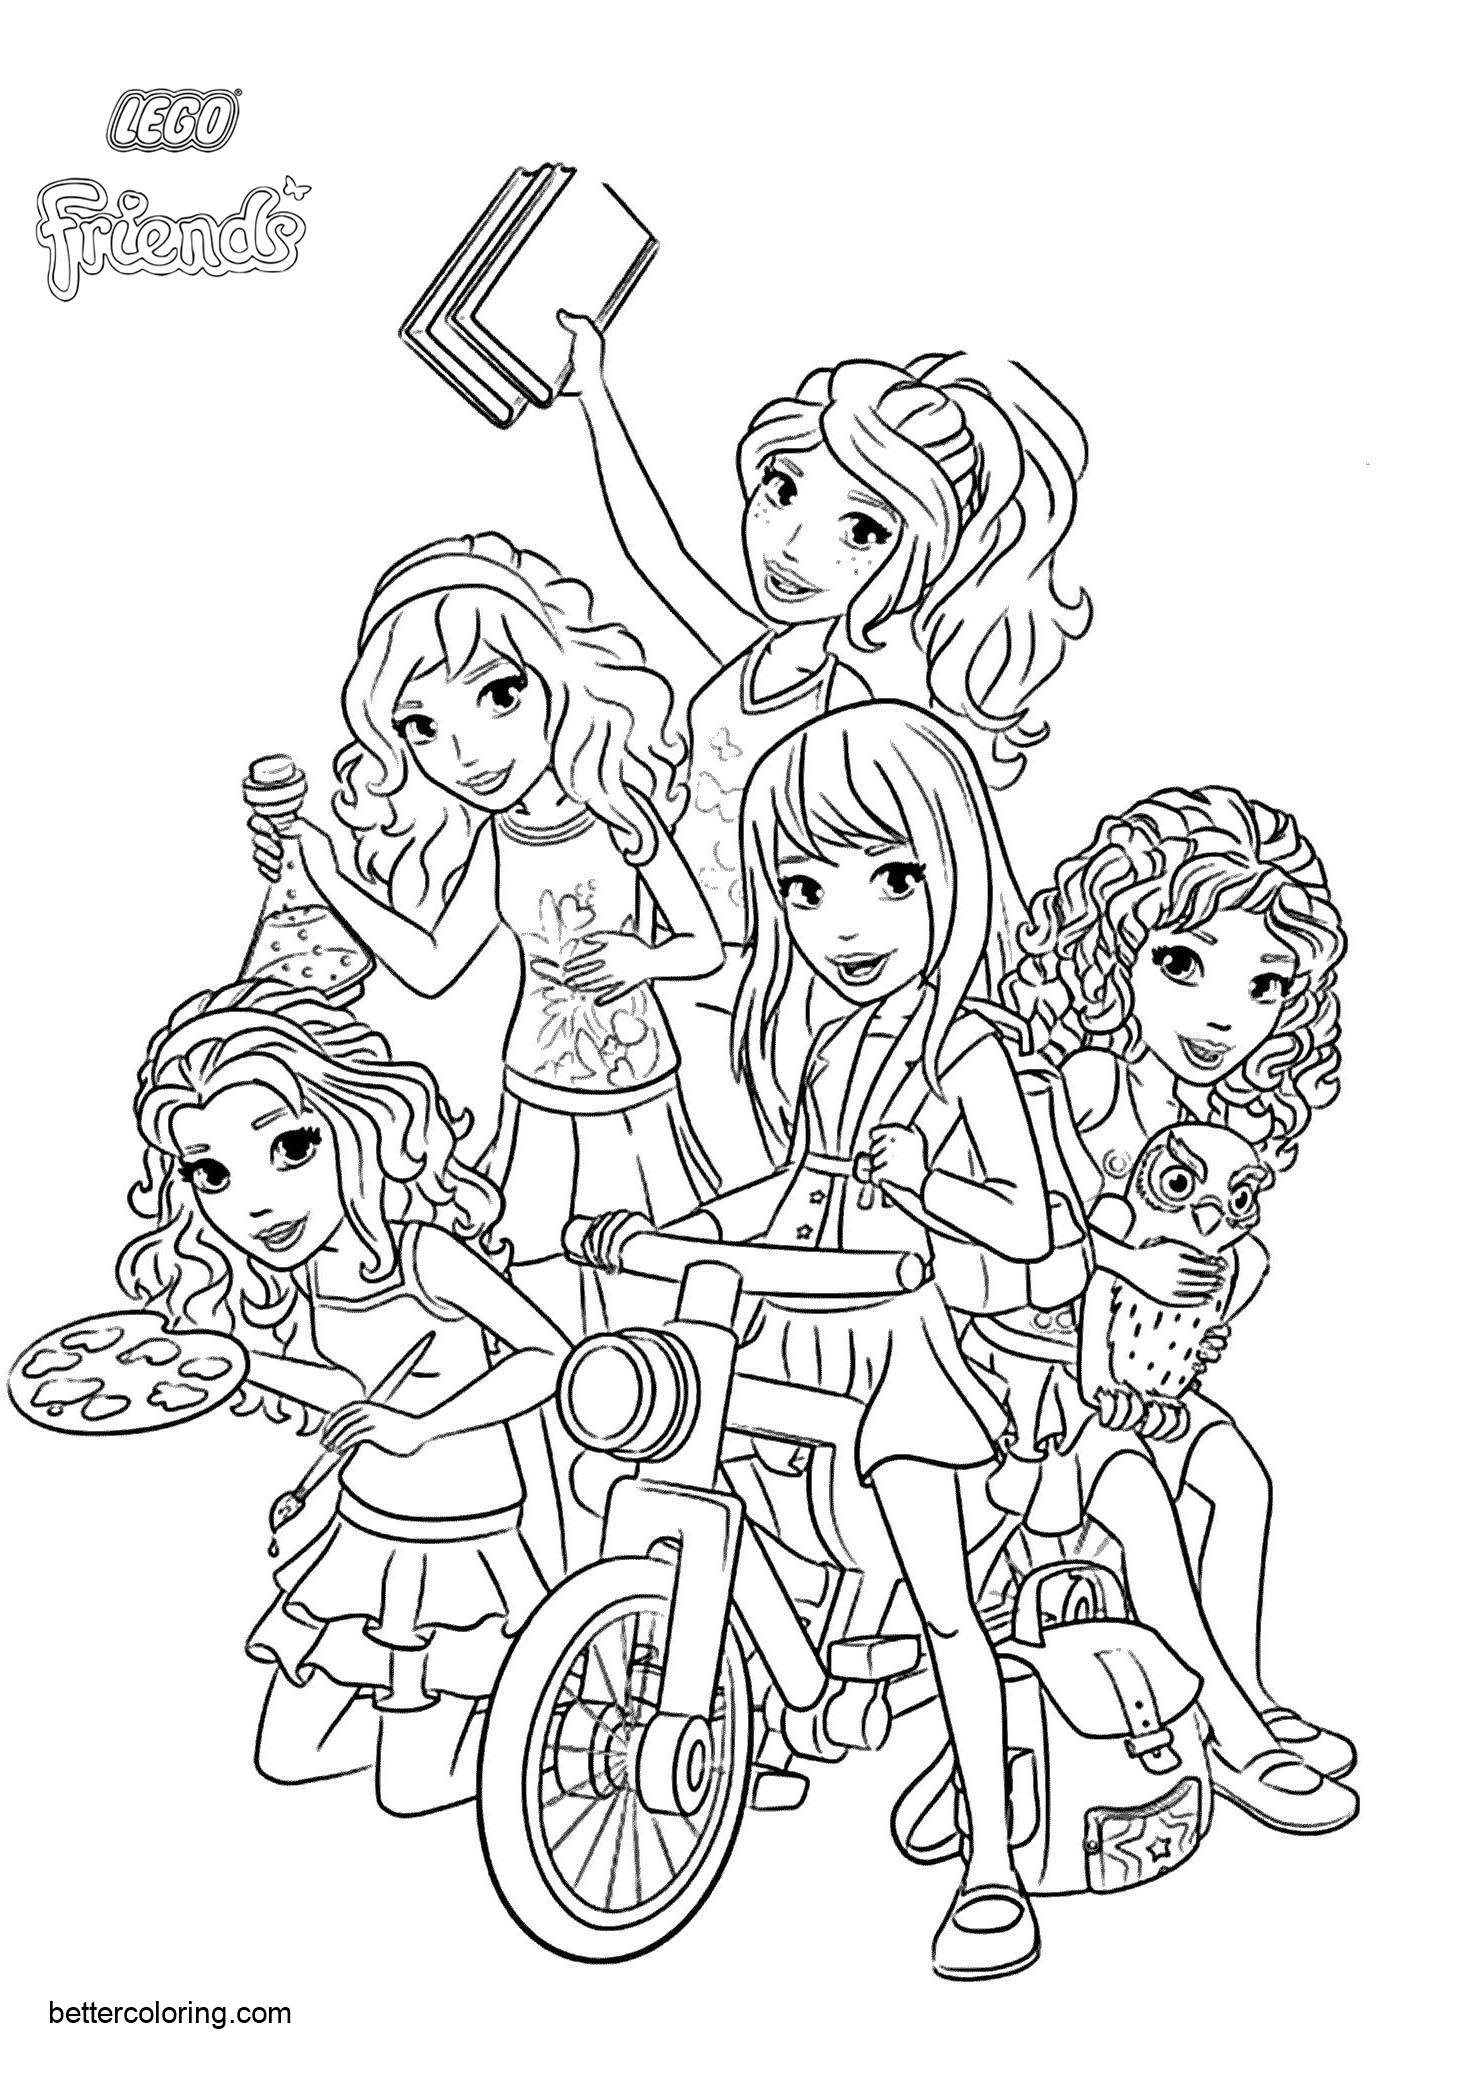 Free LEGO Friends Characters Coloring Pages printable